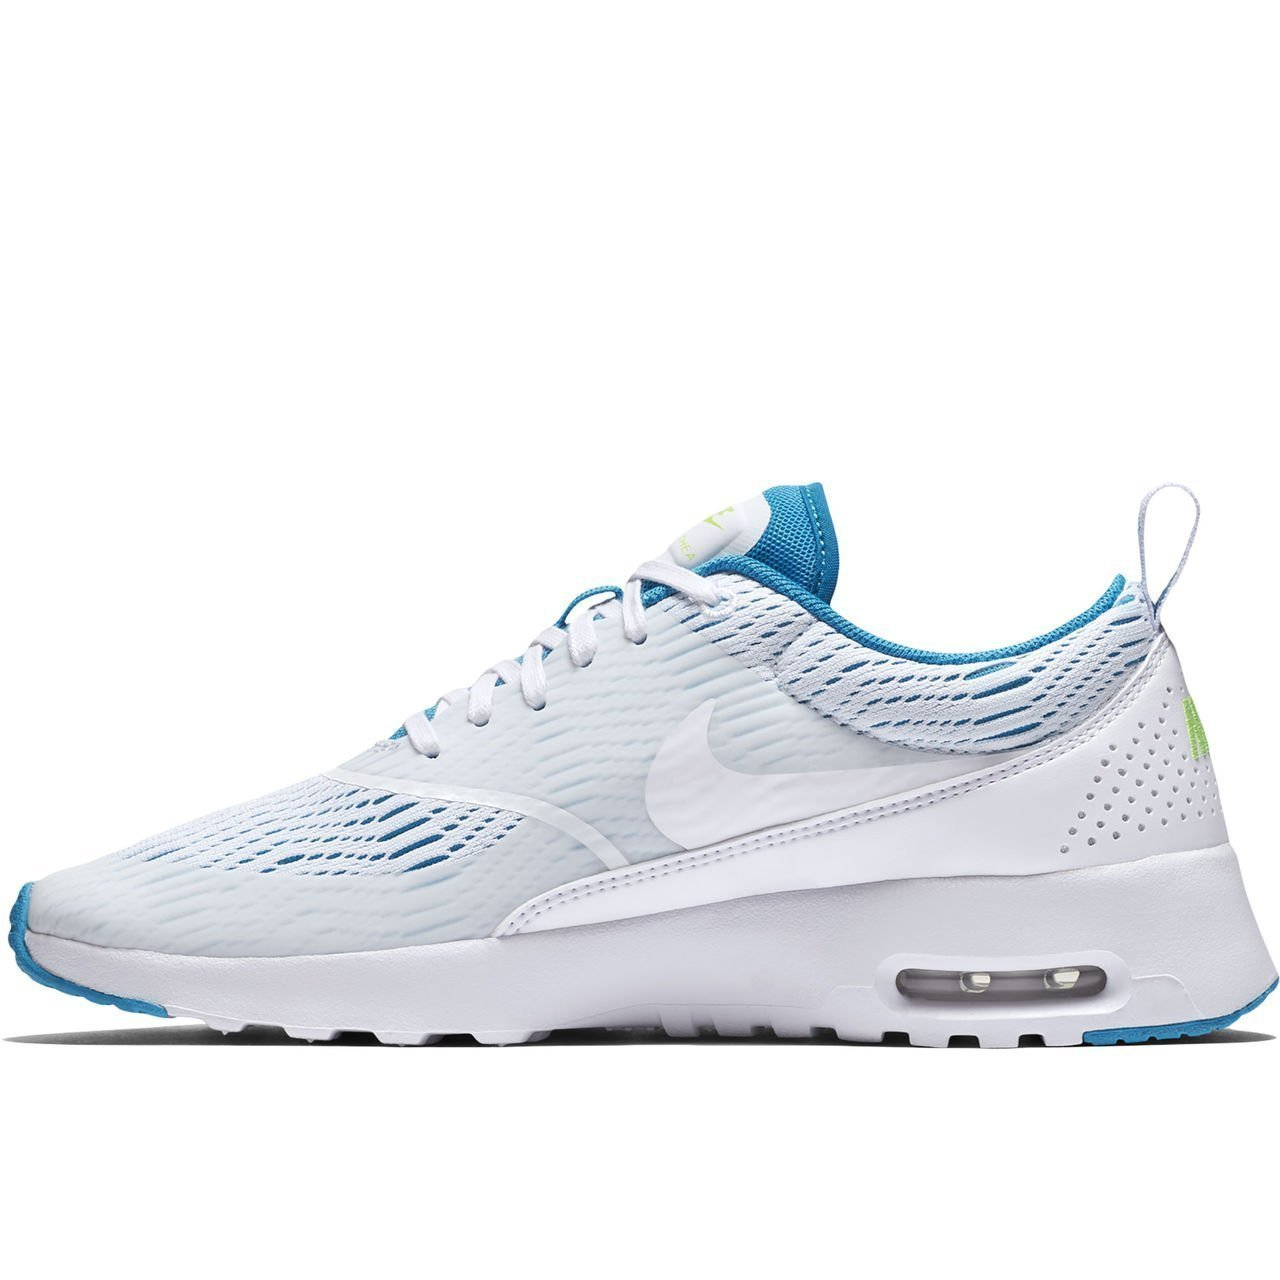 check out 472cb 07dc9 Nike Womens Air Max Thea Em Running Shoes 833887-100, US Women 10  Amazon.in Shoes  Handbags